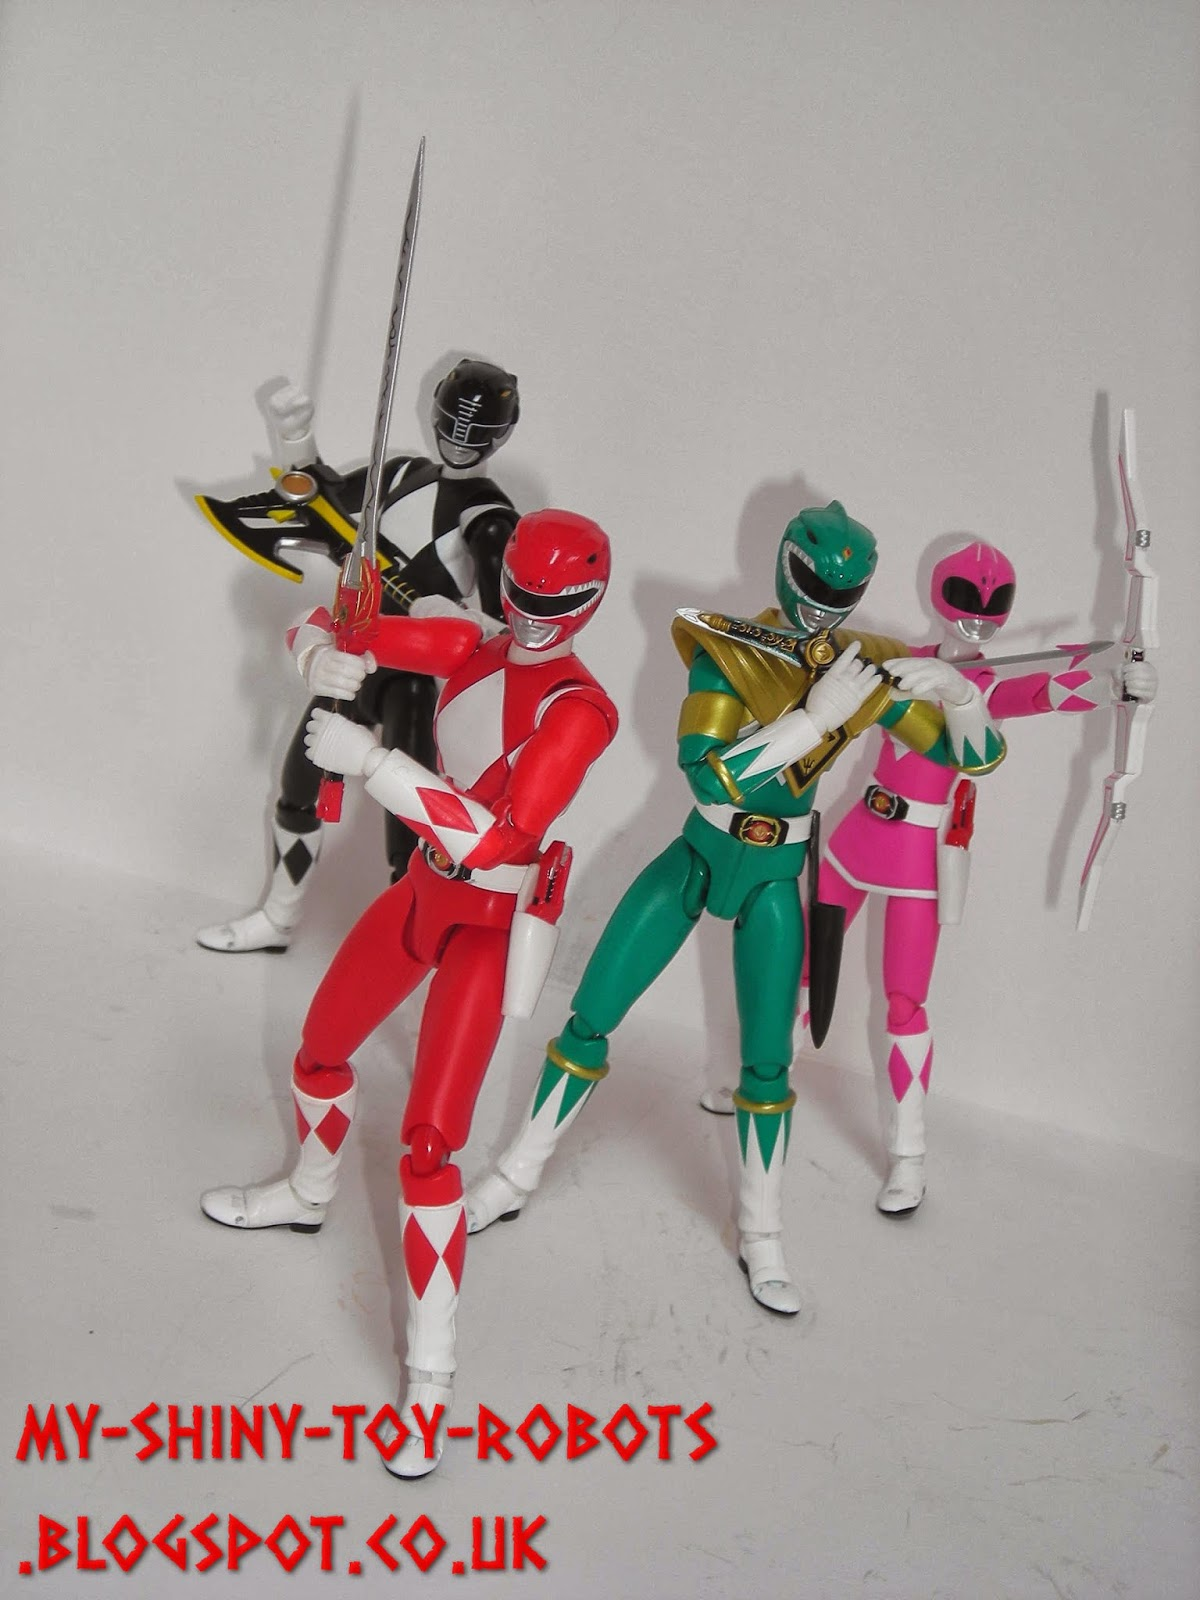 The Zyurangers/Power Rangers so far